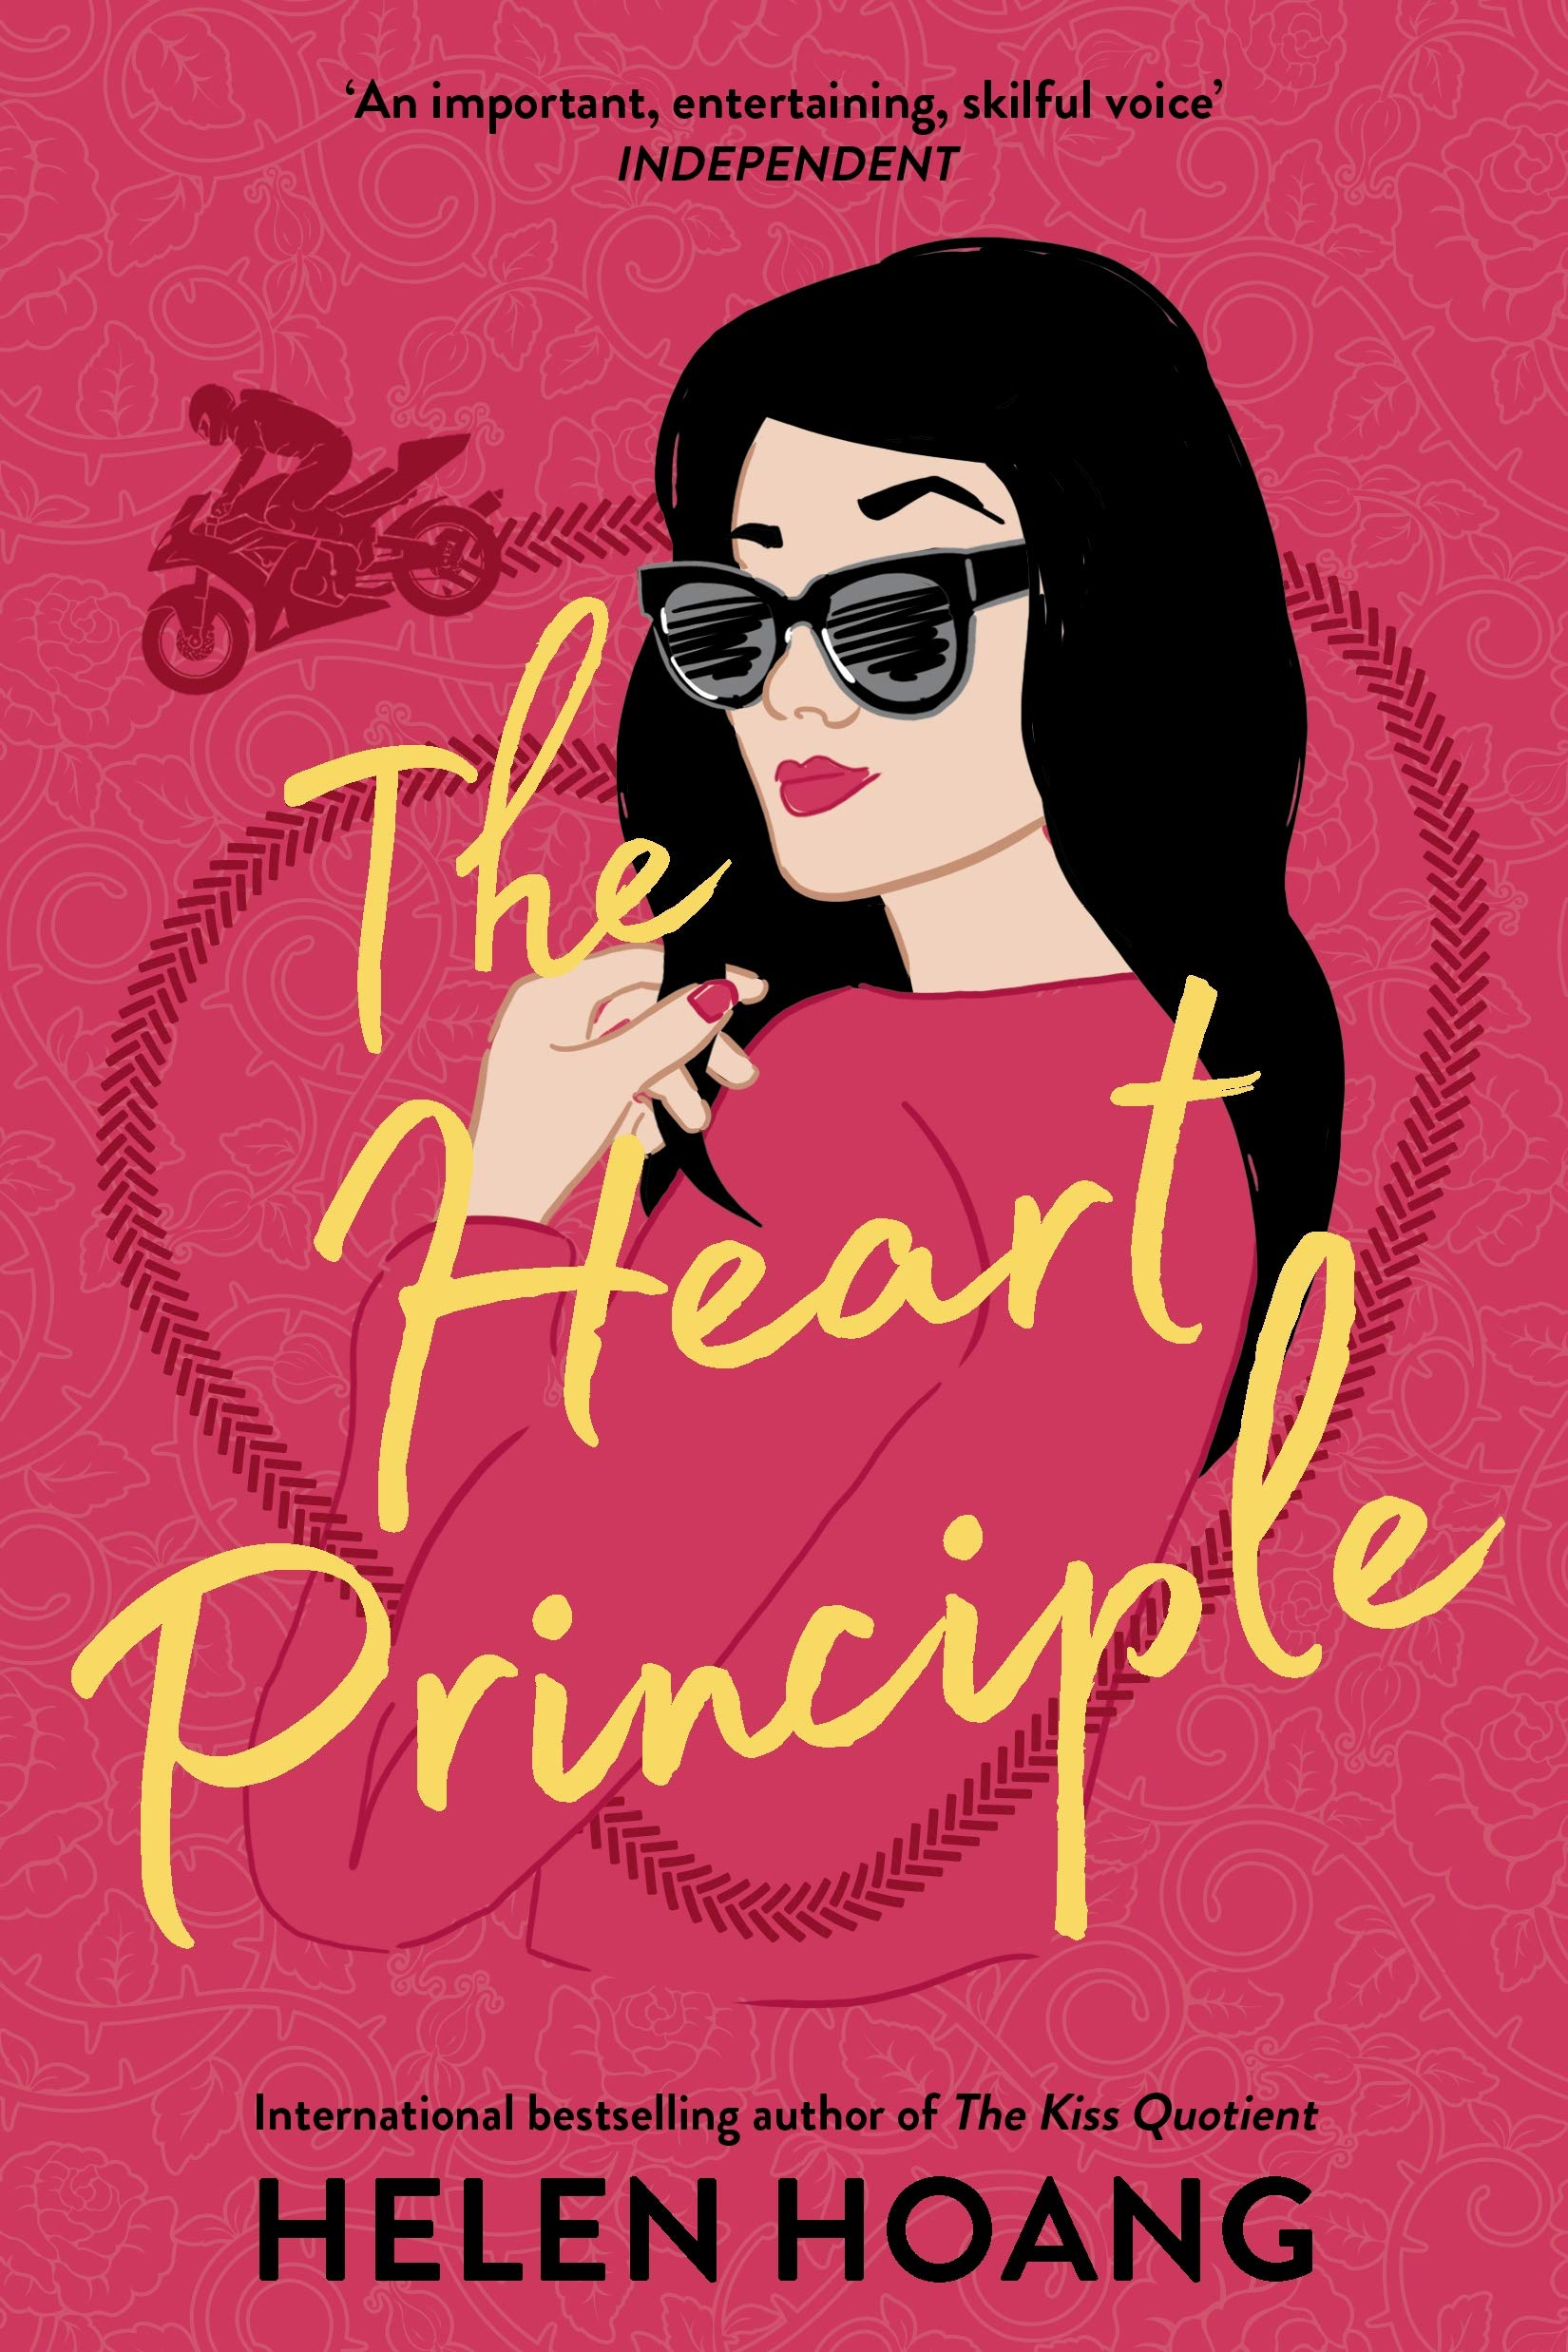 The Heart Principle (The Kiss Quotient series): Amazon.co.uk: Hoang, Helen:  9781838950804: Books